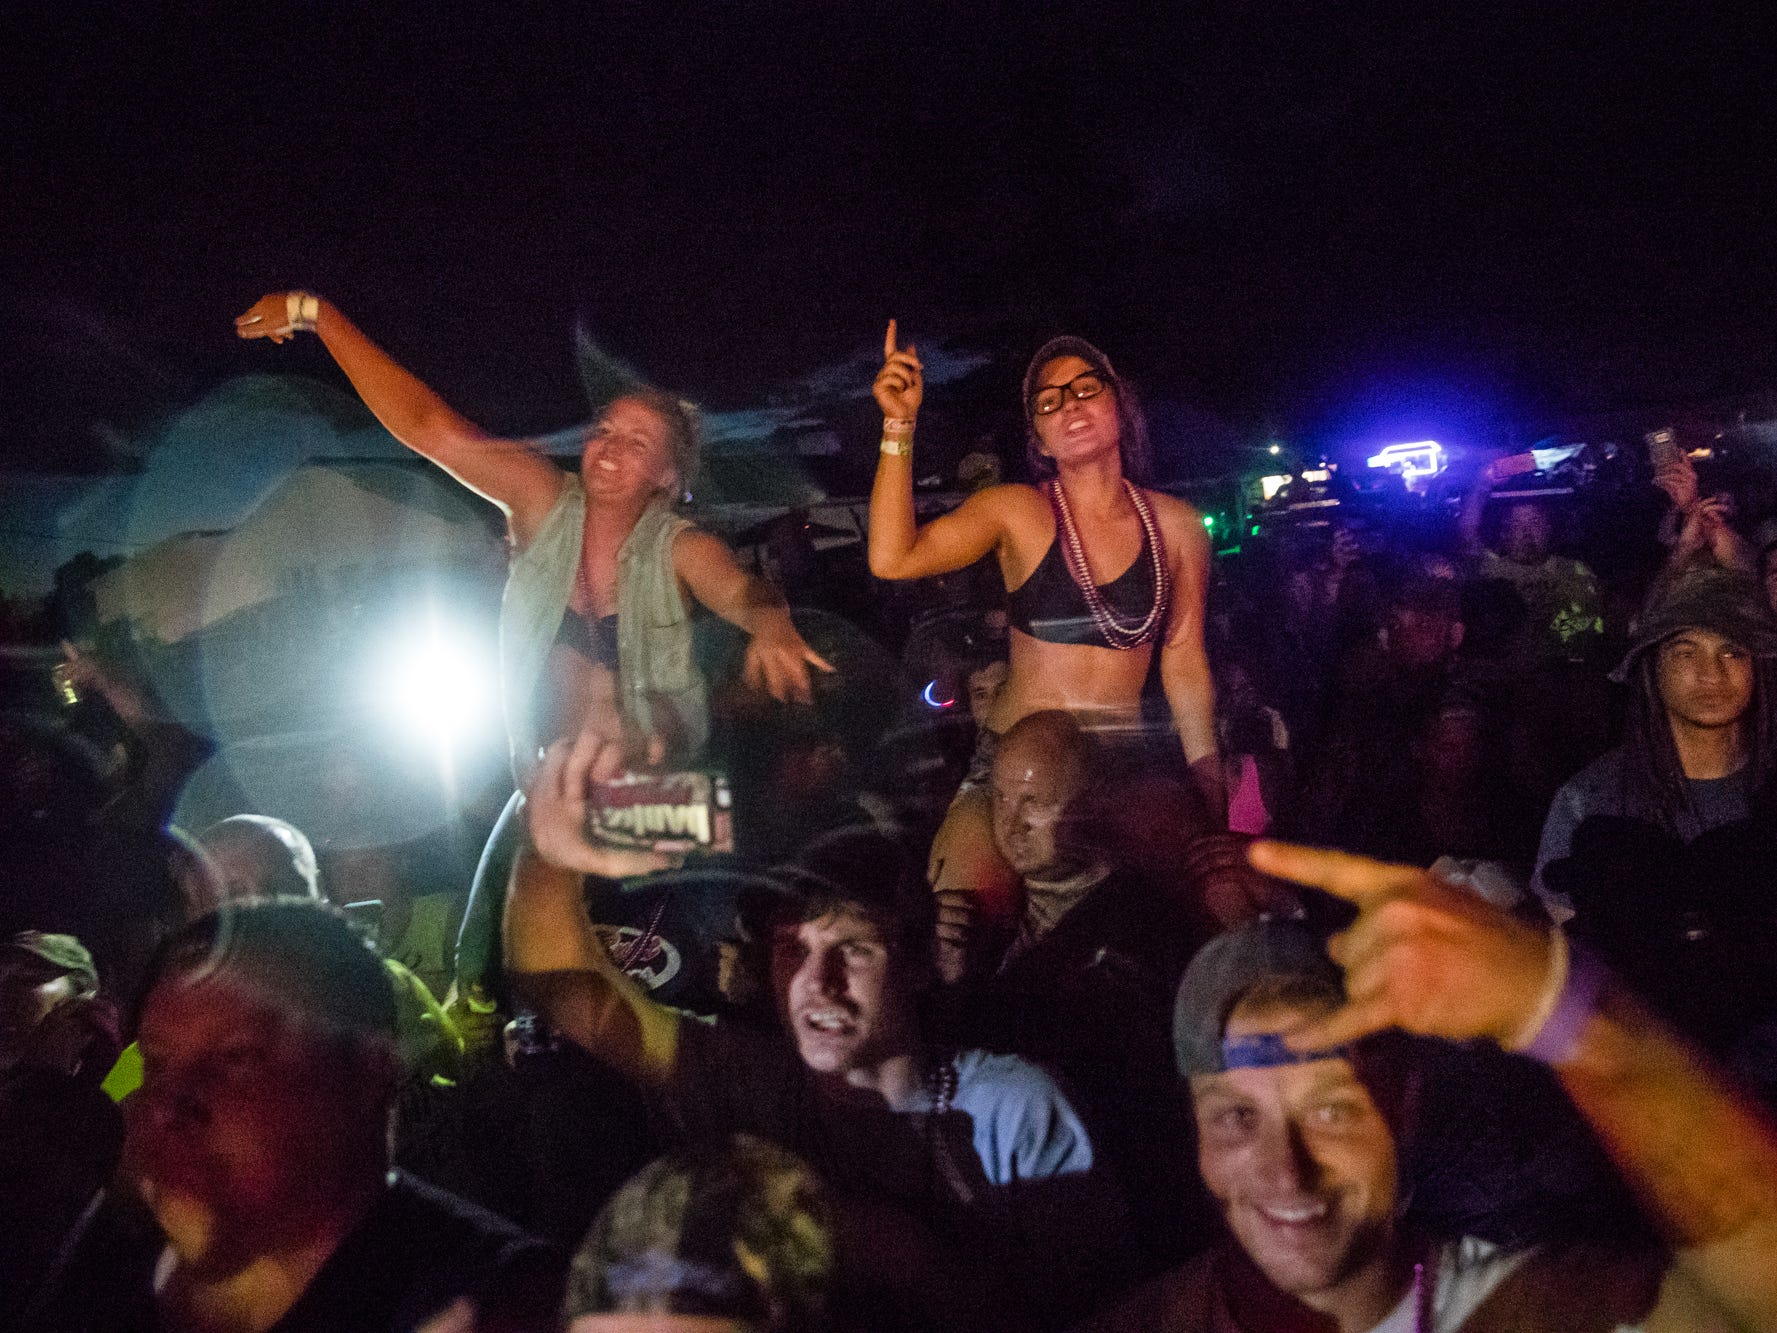 Music Fans get a better view during the concert at the Redneck Rave at BlackSwan Mudpit in Medora, Ind., on Friday, July 20, 2018.